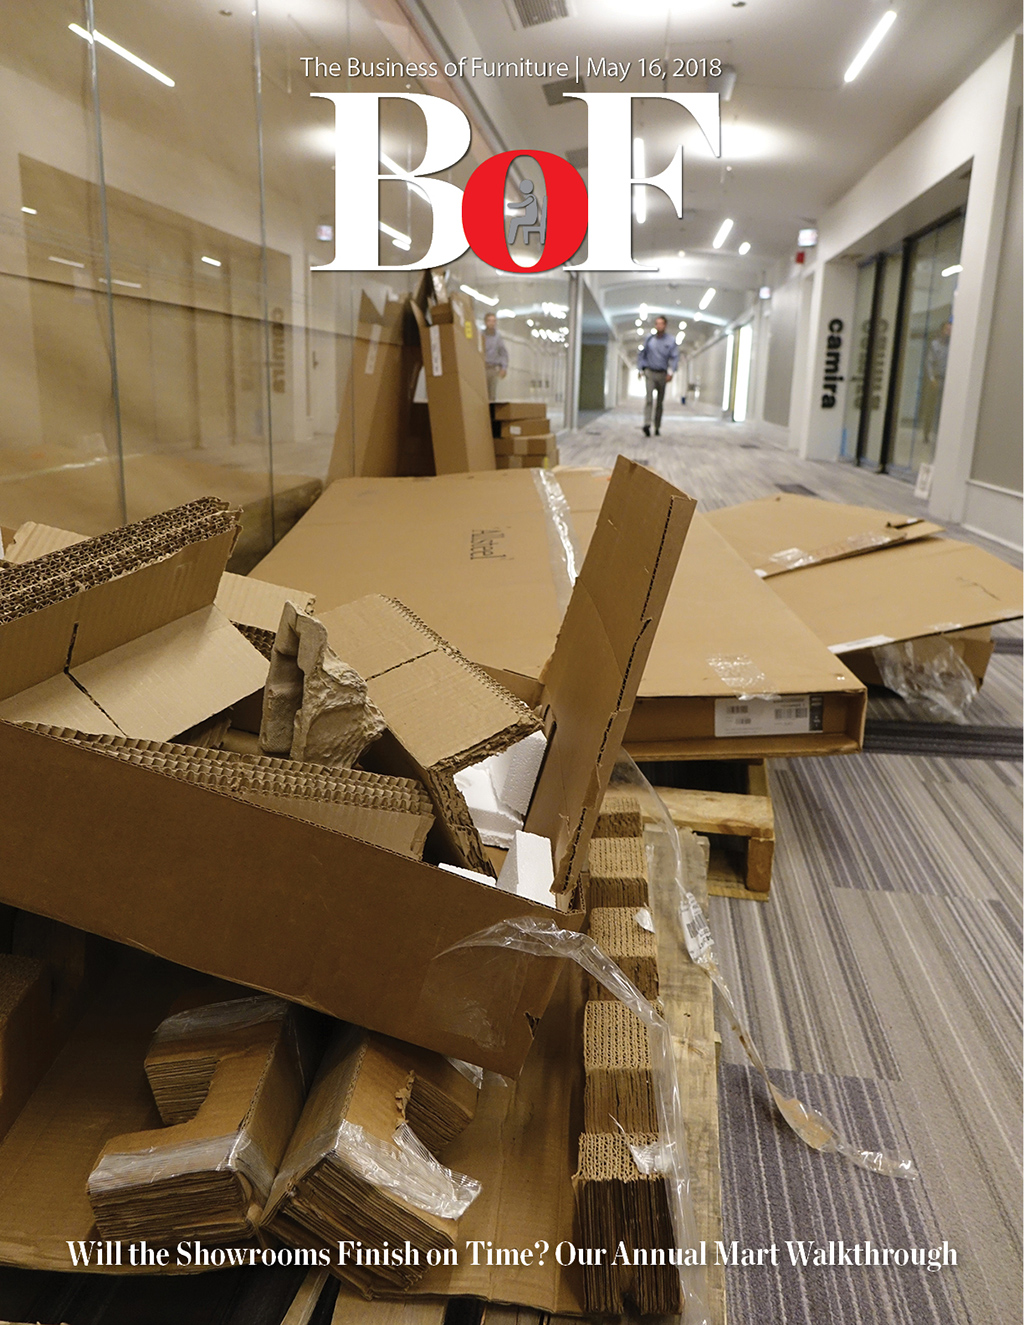 Bellow Press - Previous Editions of Workplaces Magazine and